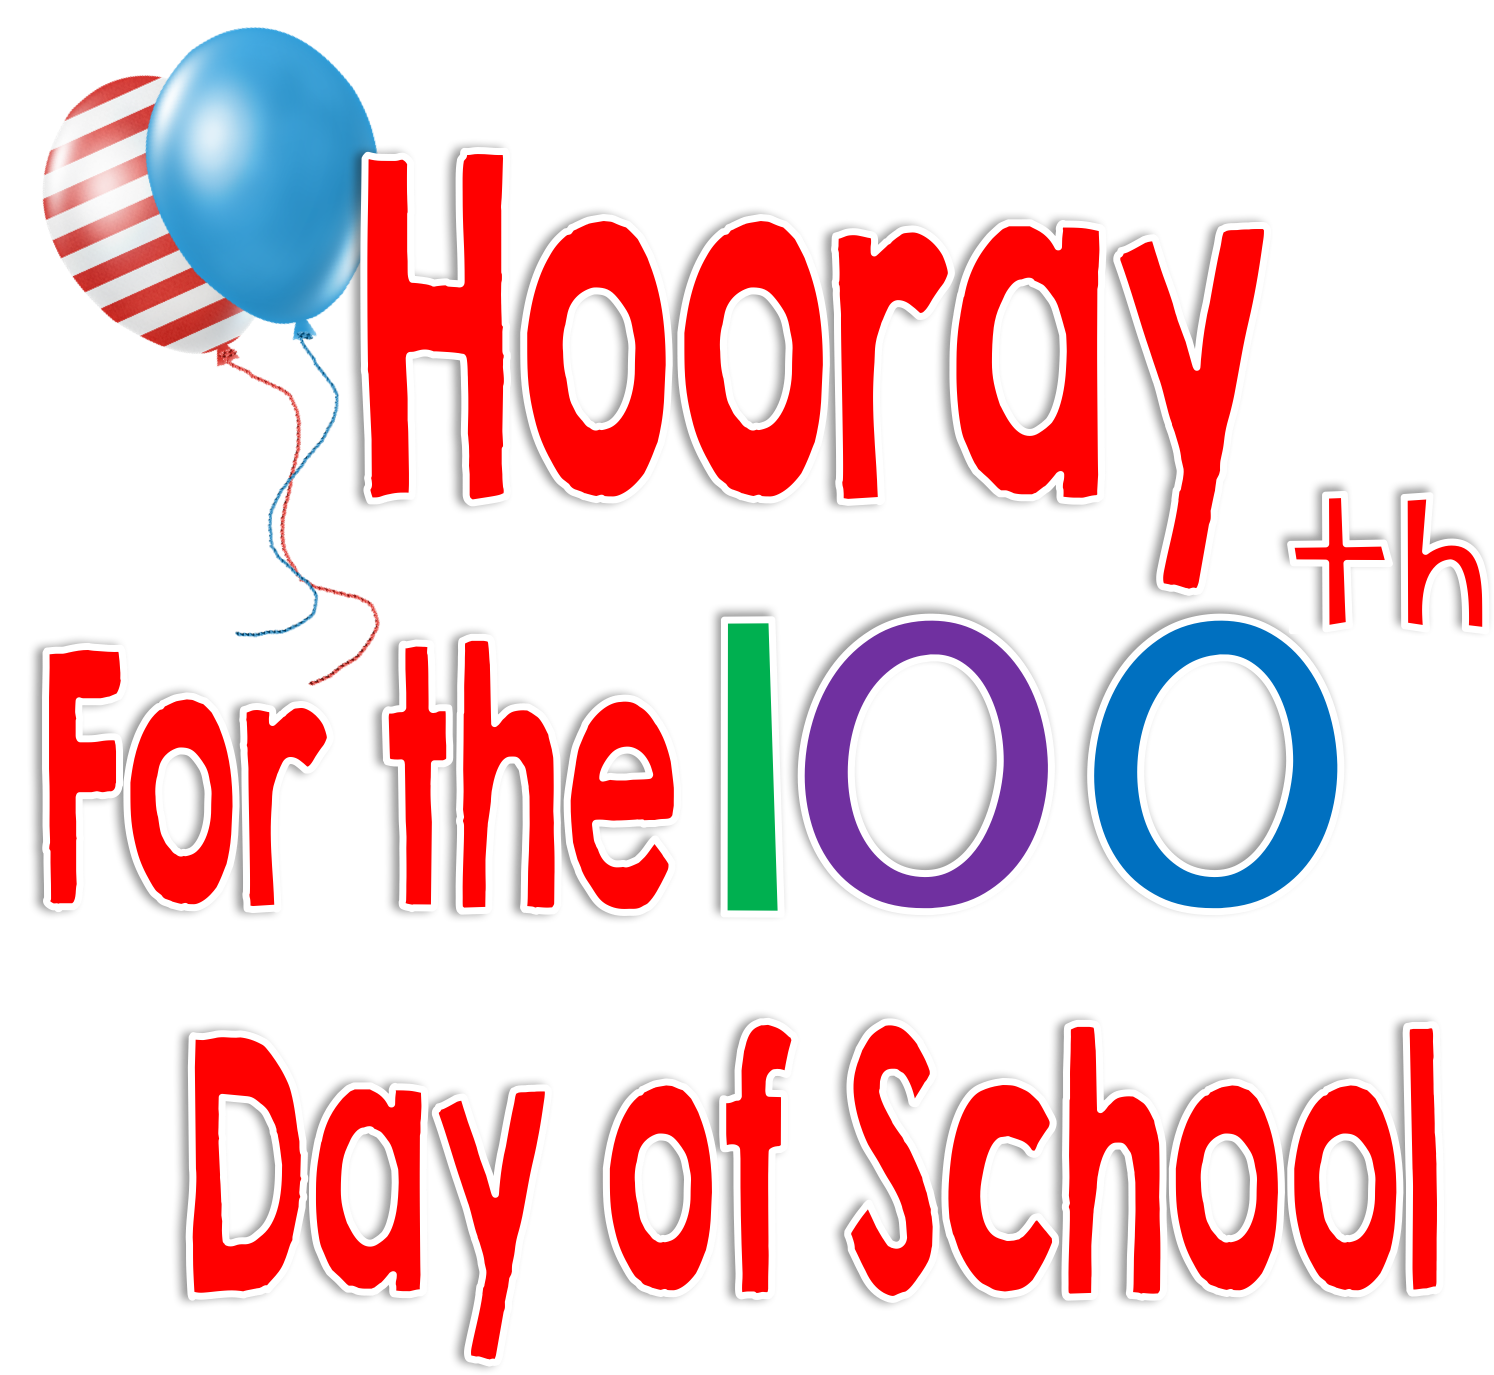 image library stock 100th of clipart transparent. Time kindergarten th day